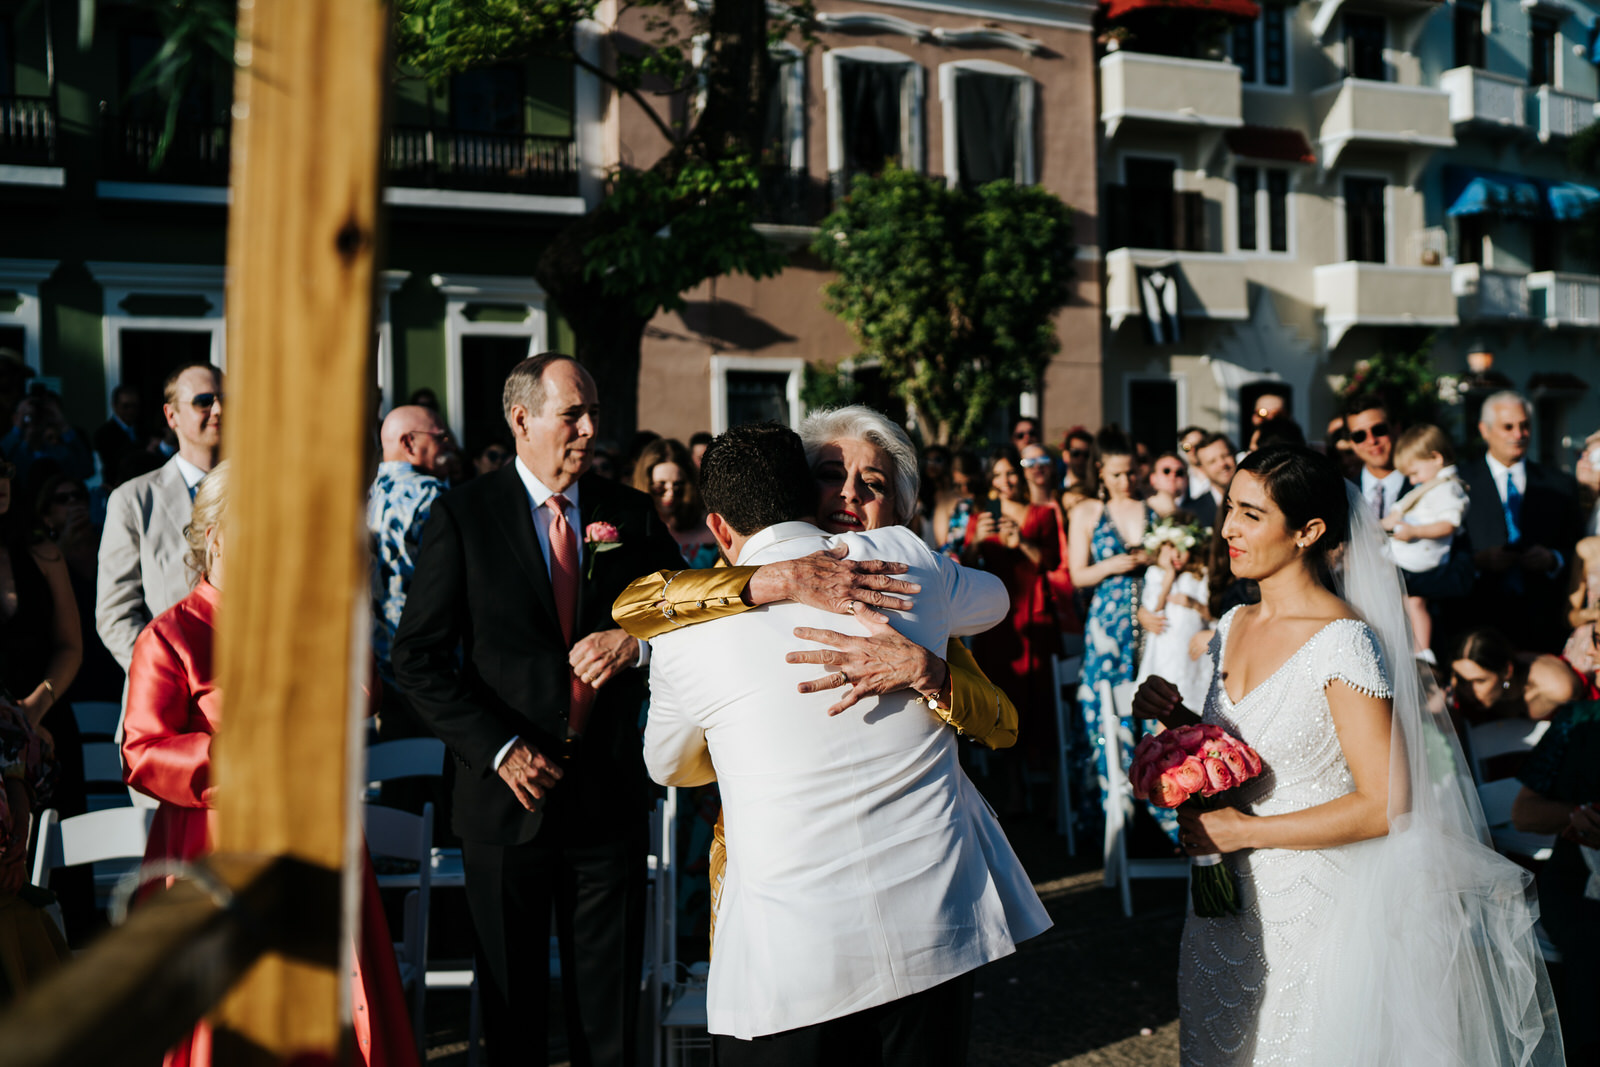 Bride's mother embraces the groom after reaching the front of the aisle